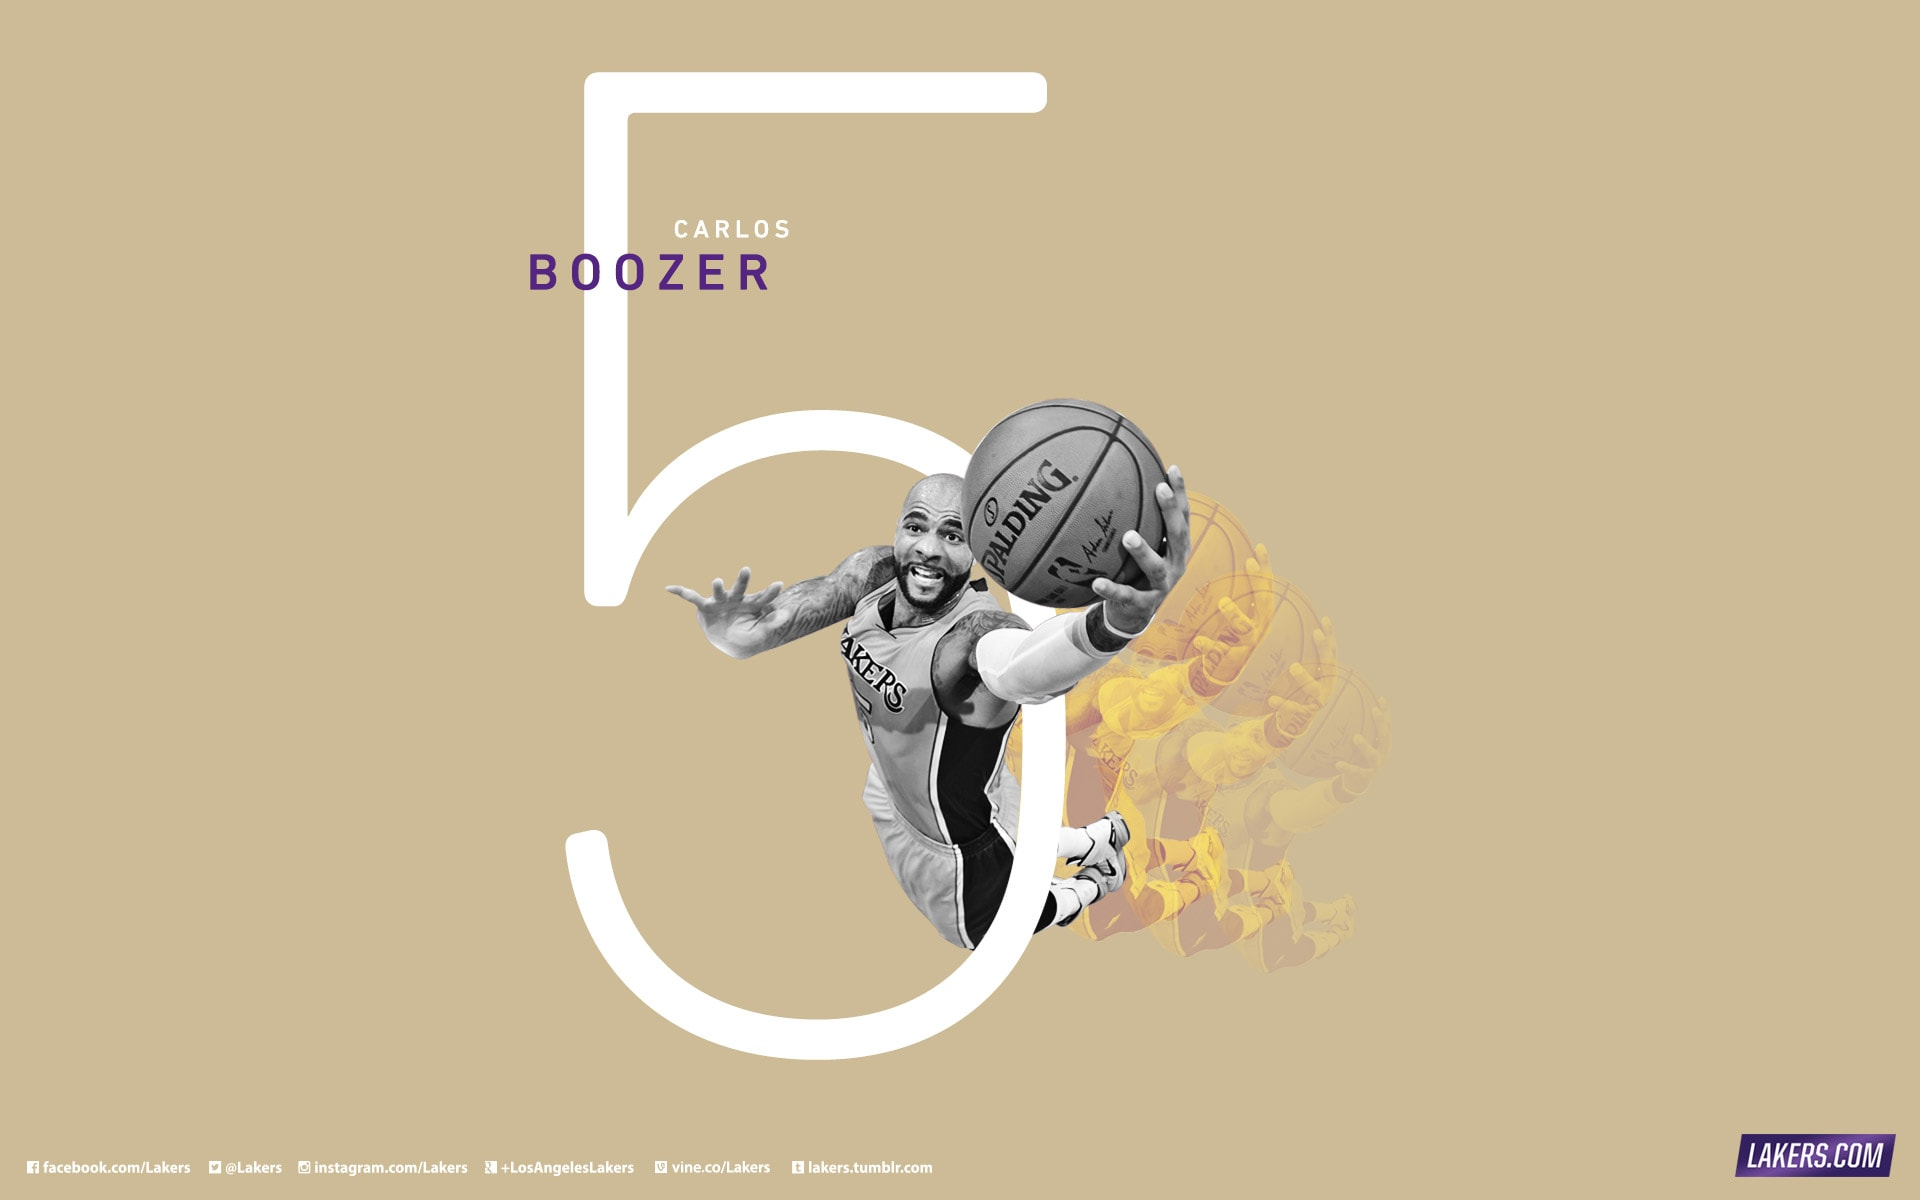 Carlos Boozer Player Wallpaper